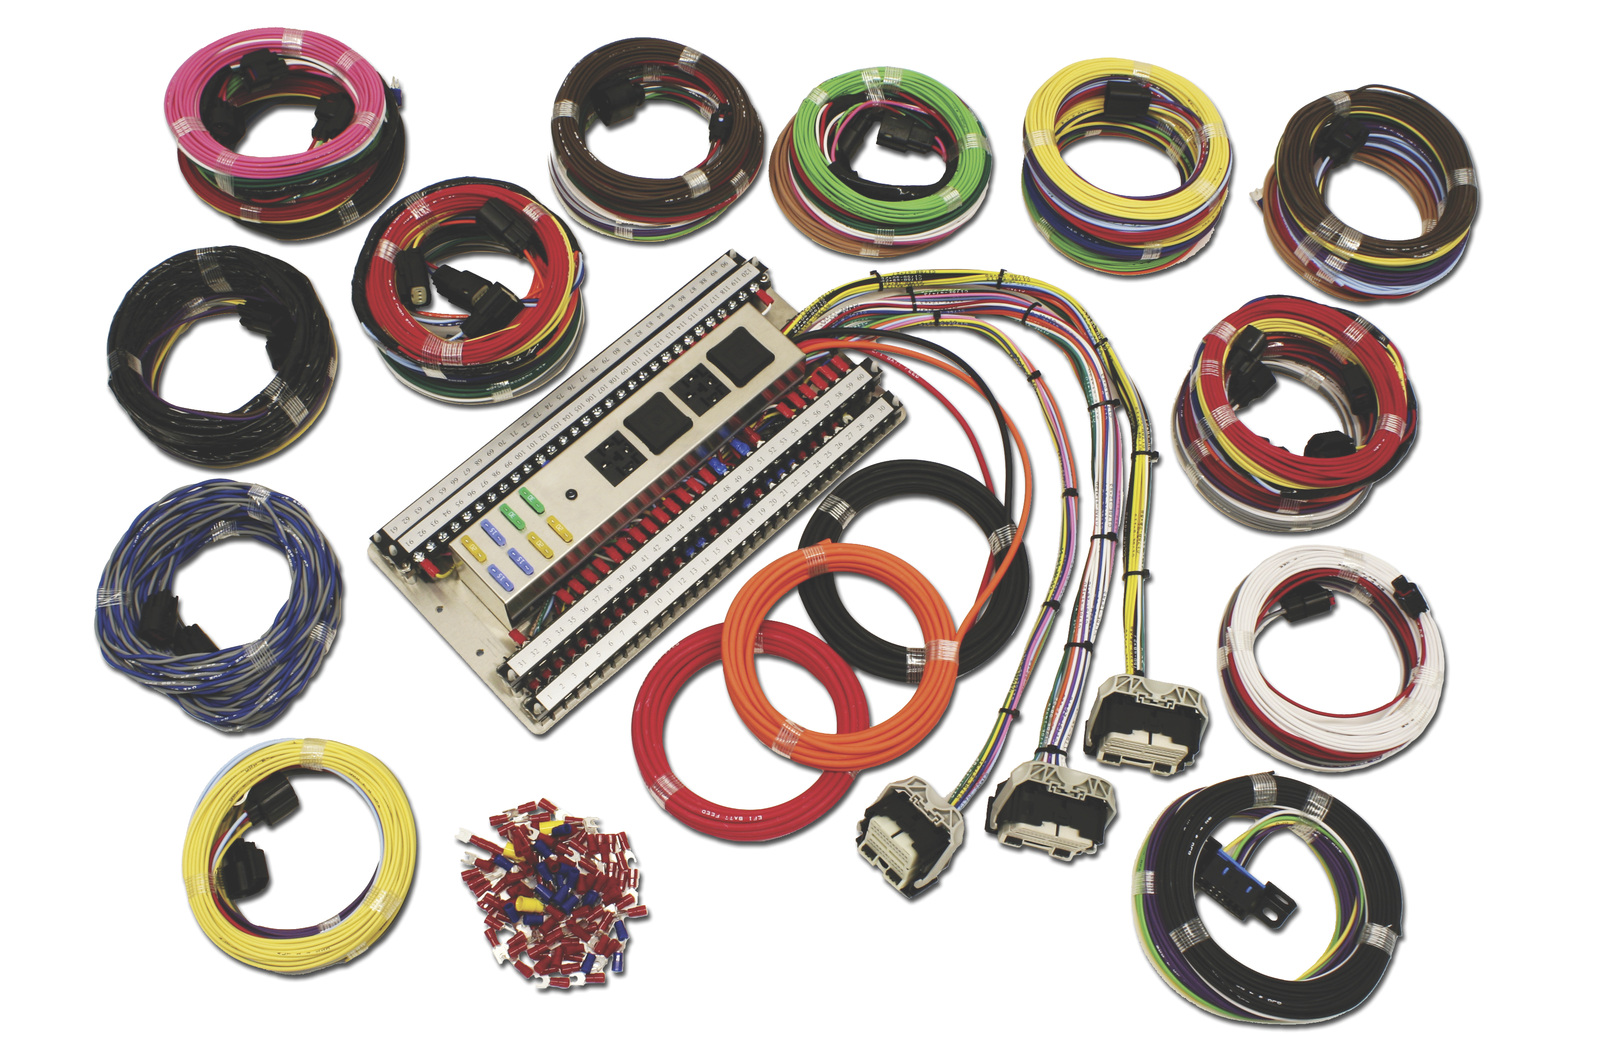 Ron Francis Wiring Complete Mustang Coyote 50 Kit Classiccars Bmw 850i Engine Harness Kits From